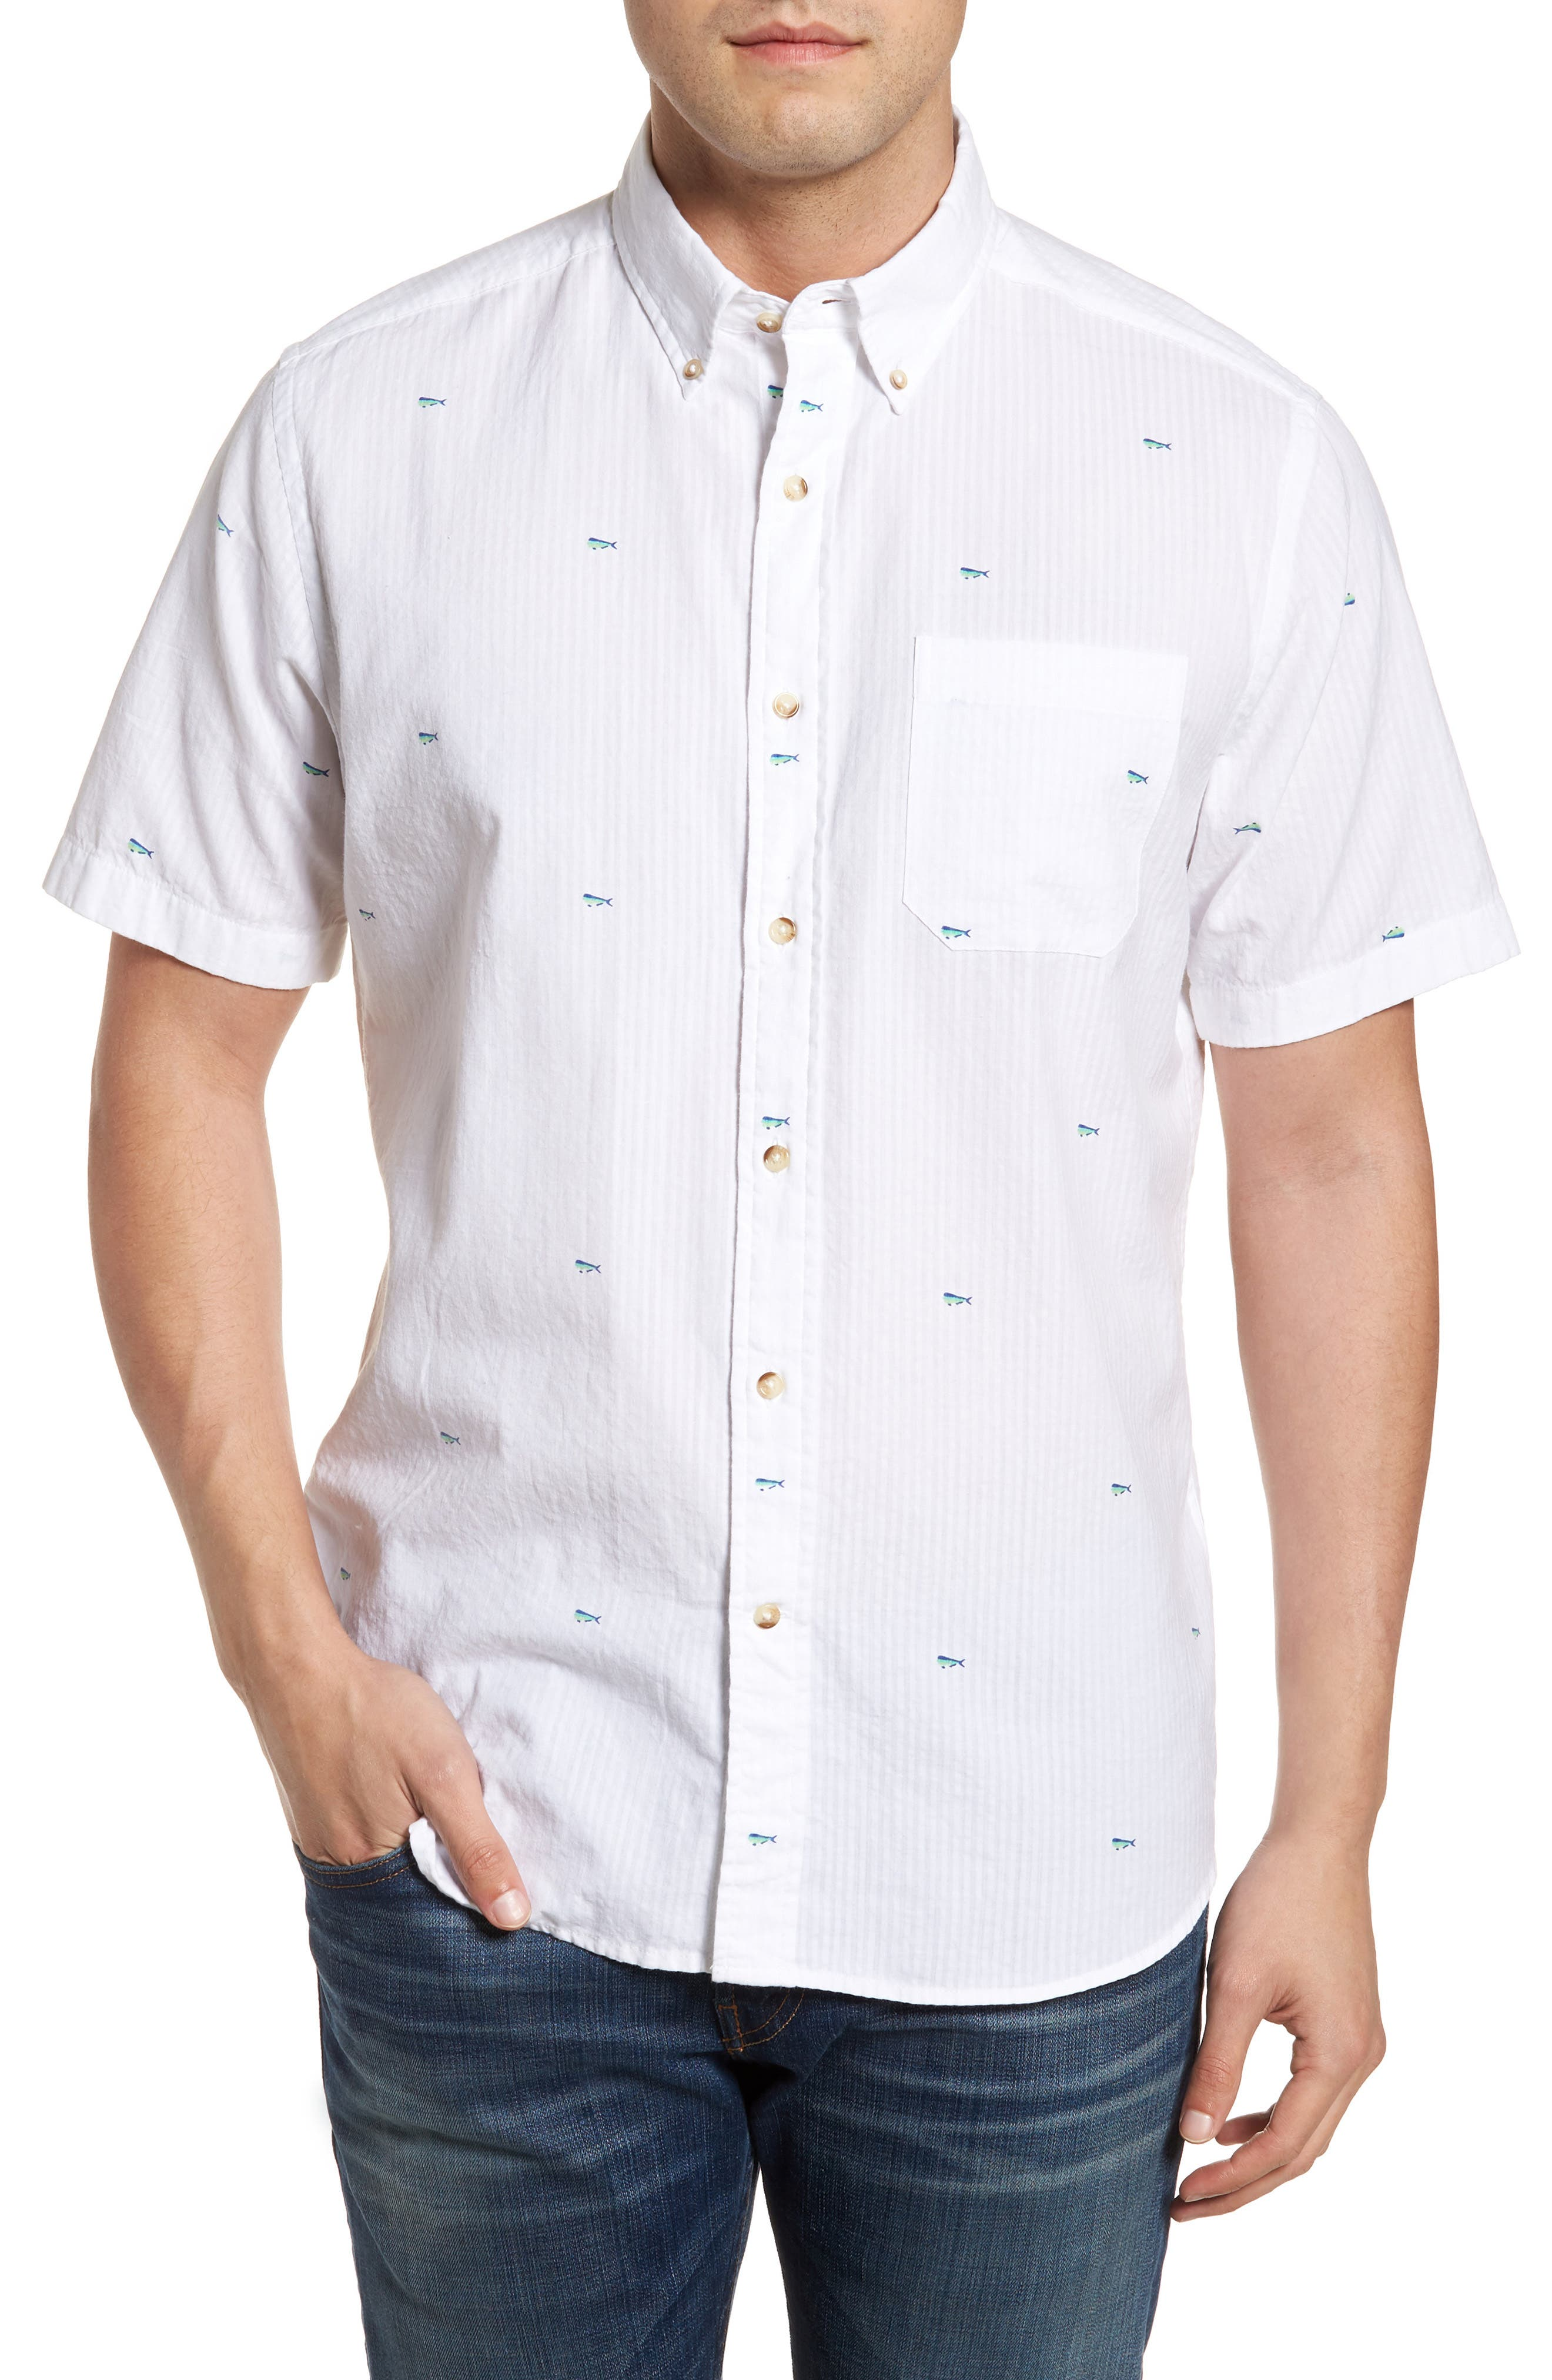 Catch of the Day Sport Shirt,                         Main,                         color, Classic White